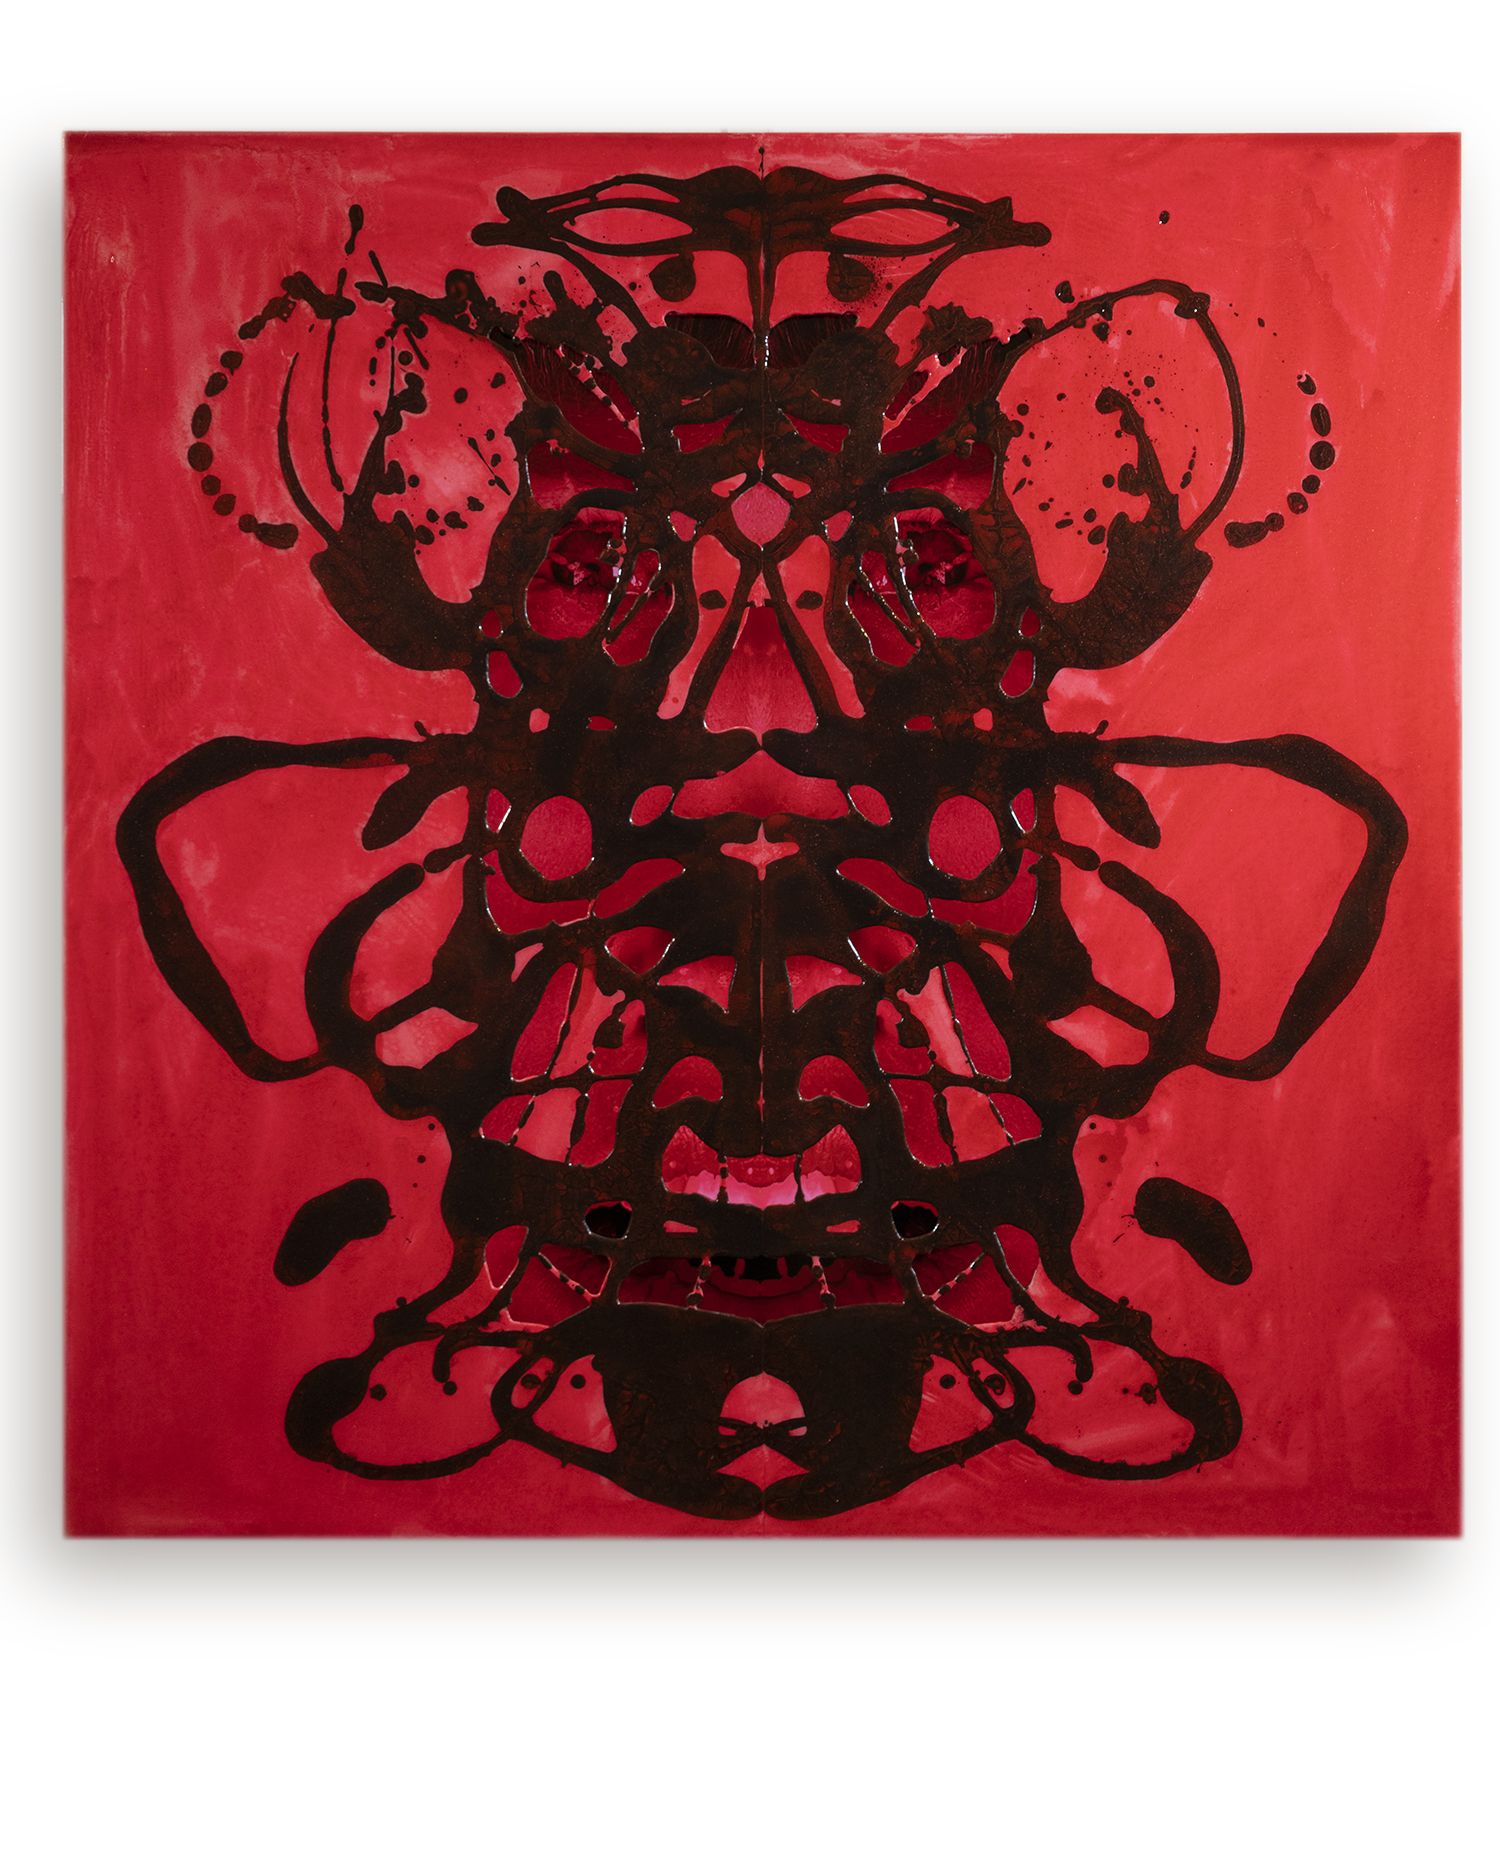 Red Rorschach Small2.jpg